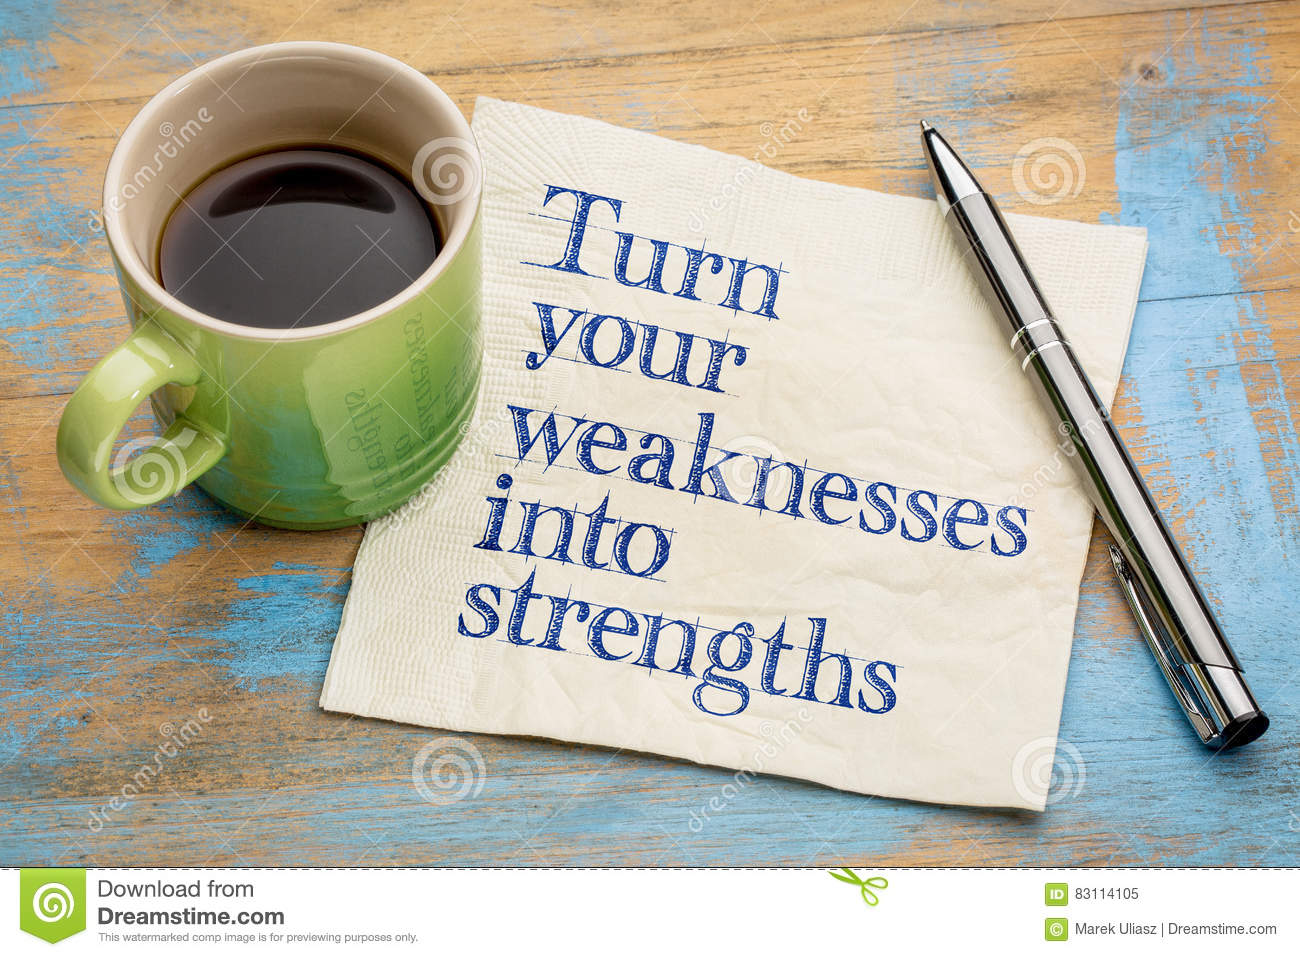 turn your weaknesses into strengths stock photo image 83114105 turn your weaknesses into strengths